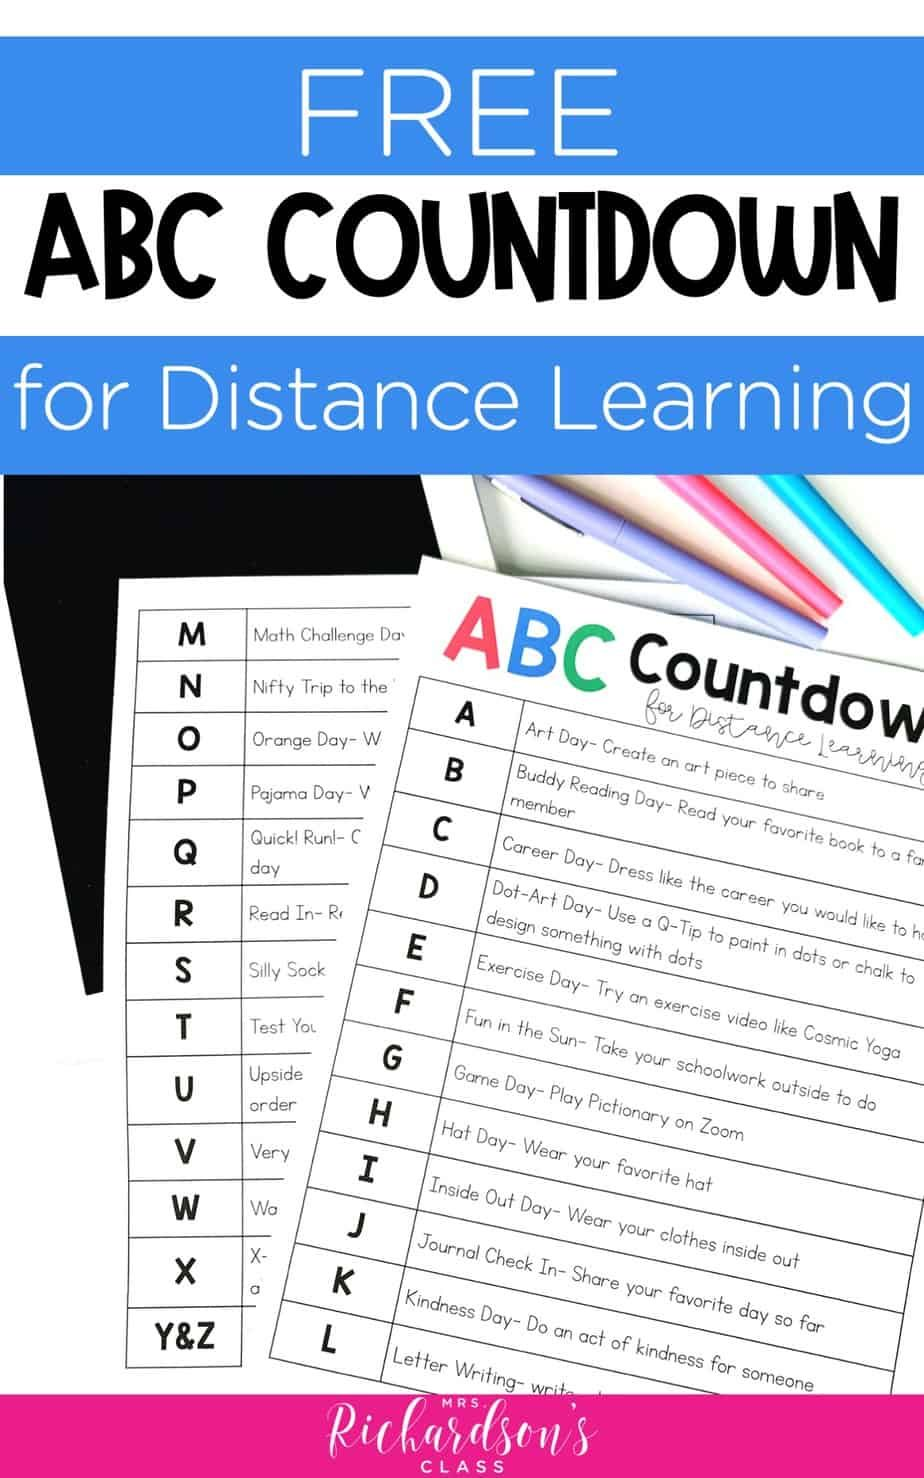 Free abc countdown to summer for distance learning in 2020